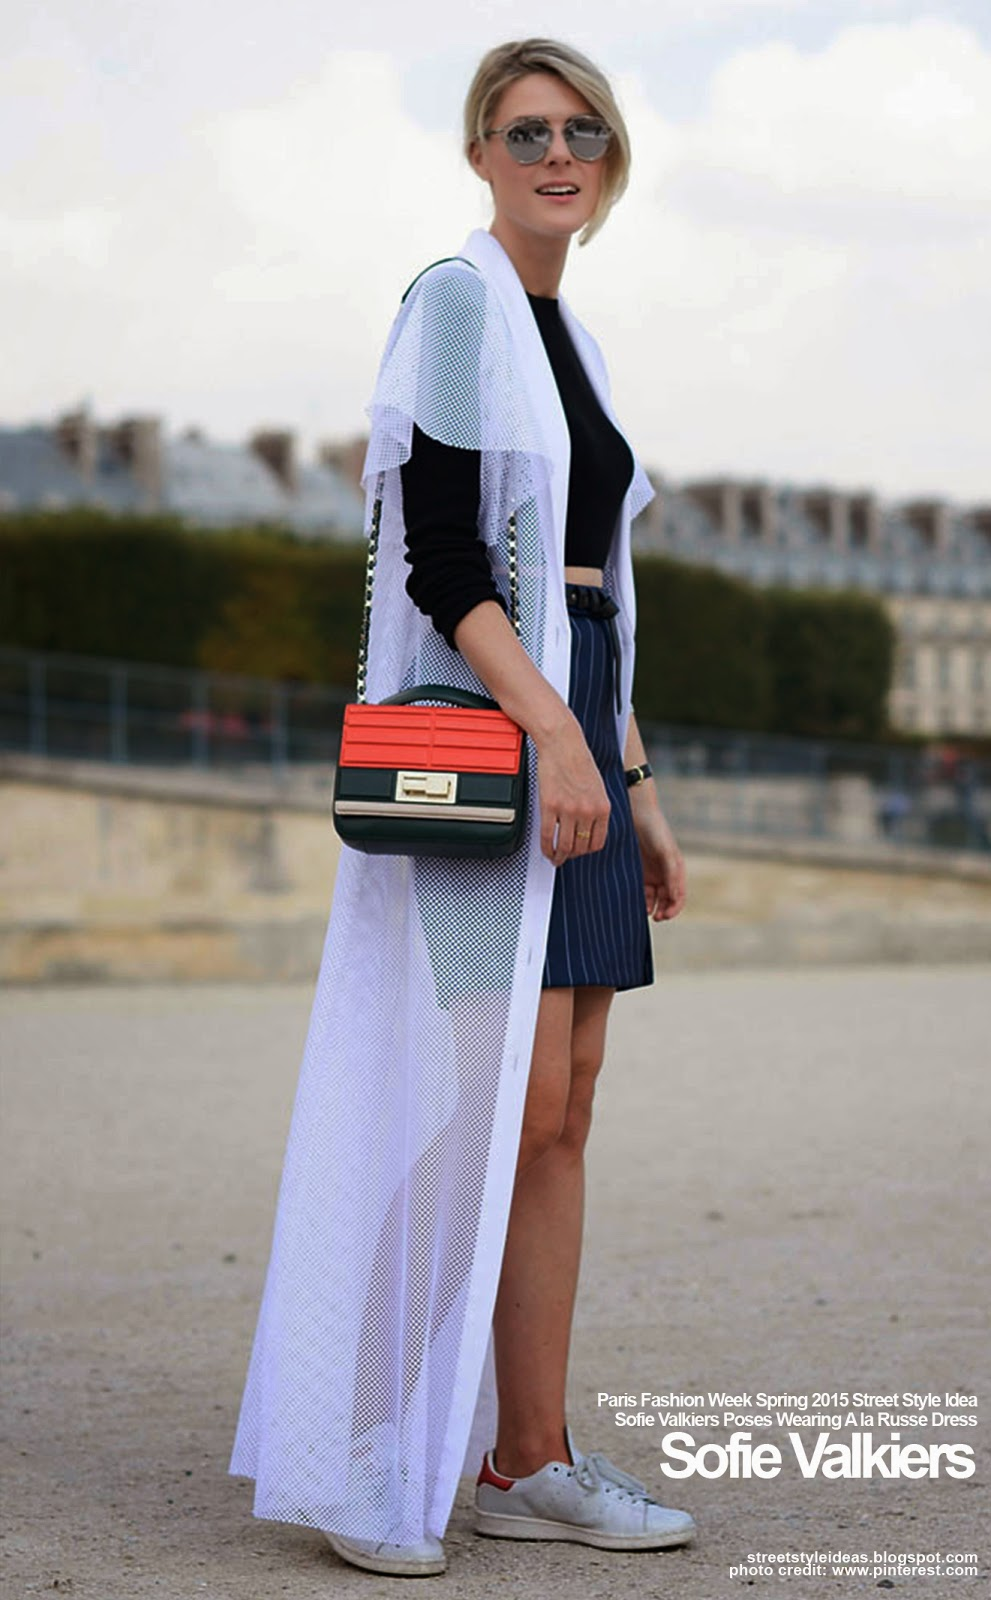 Paris Fashion Week Spring 2015 Street Style Idea Sofie Valkiers Poses Wearing A La Russe Dress